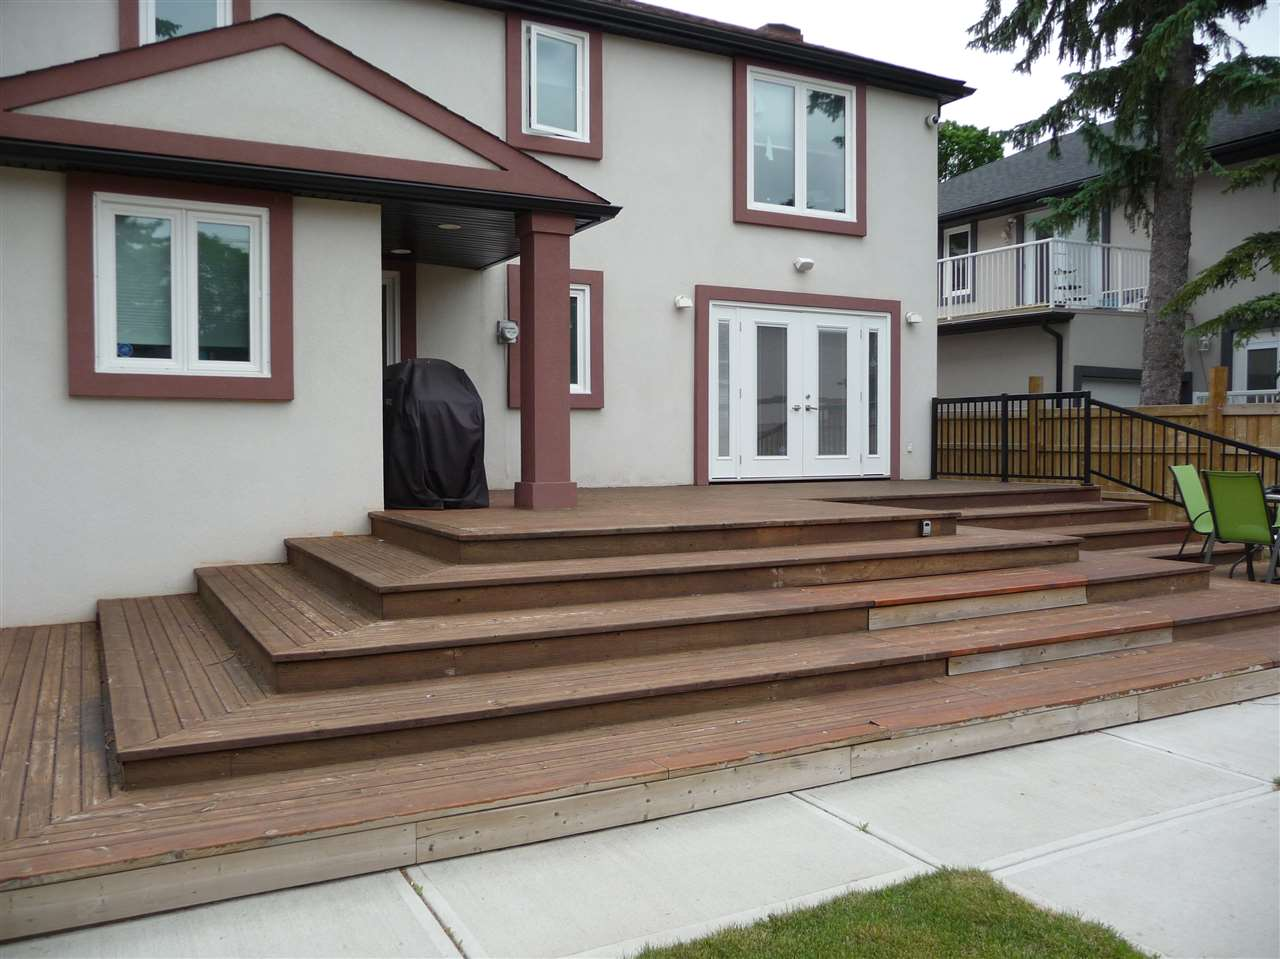 Photo 25: 8920 116 Street in Edmonton: Zone 15 House for sale : MLS® # E4069200